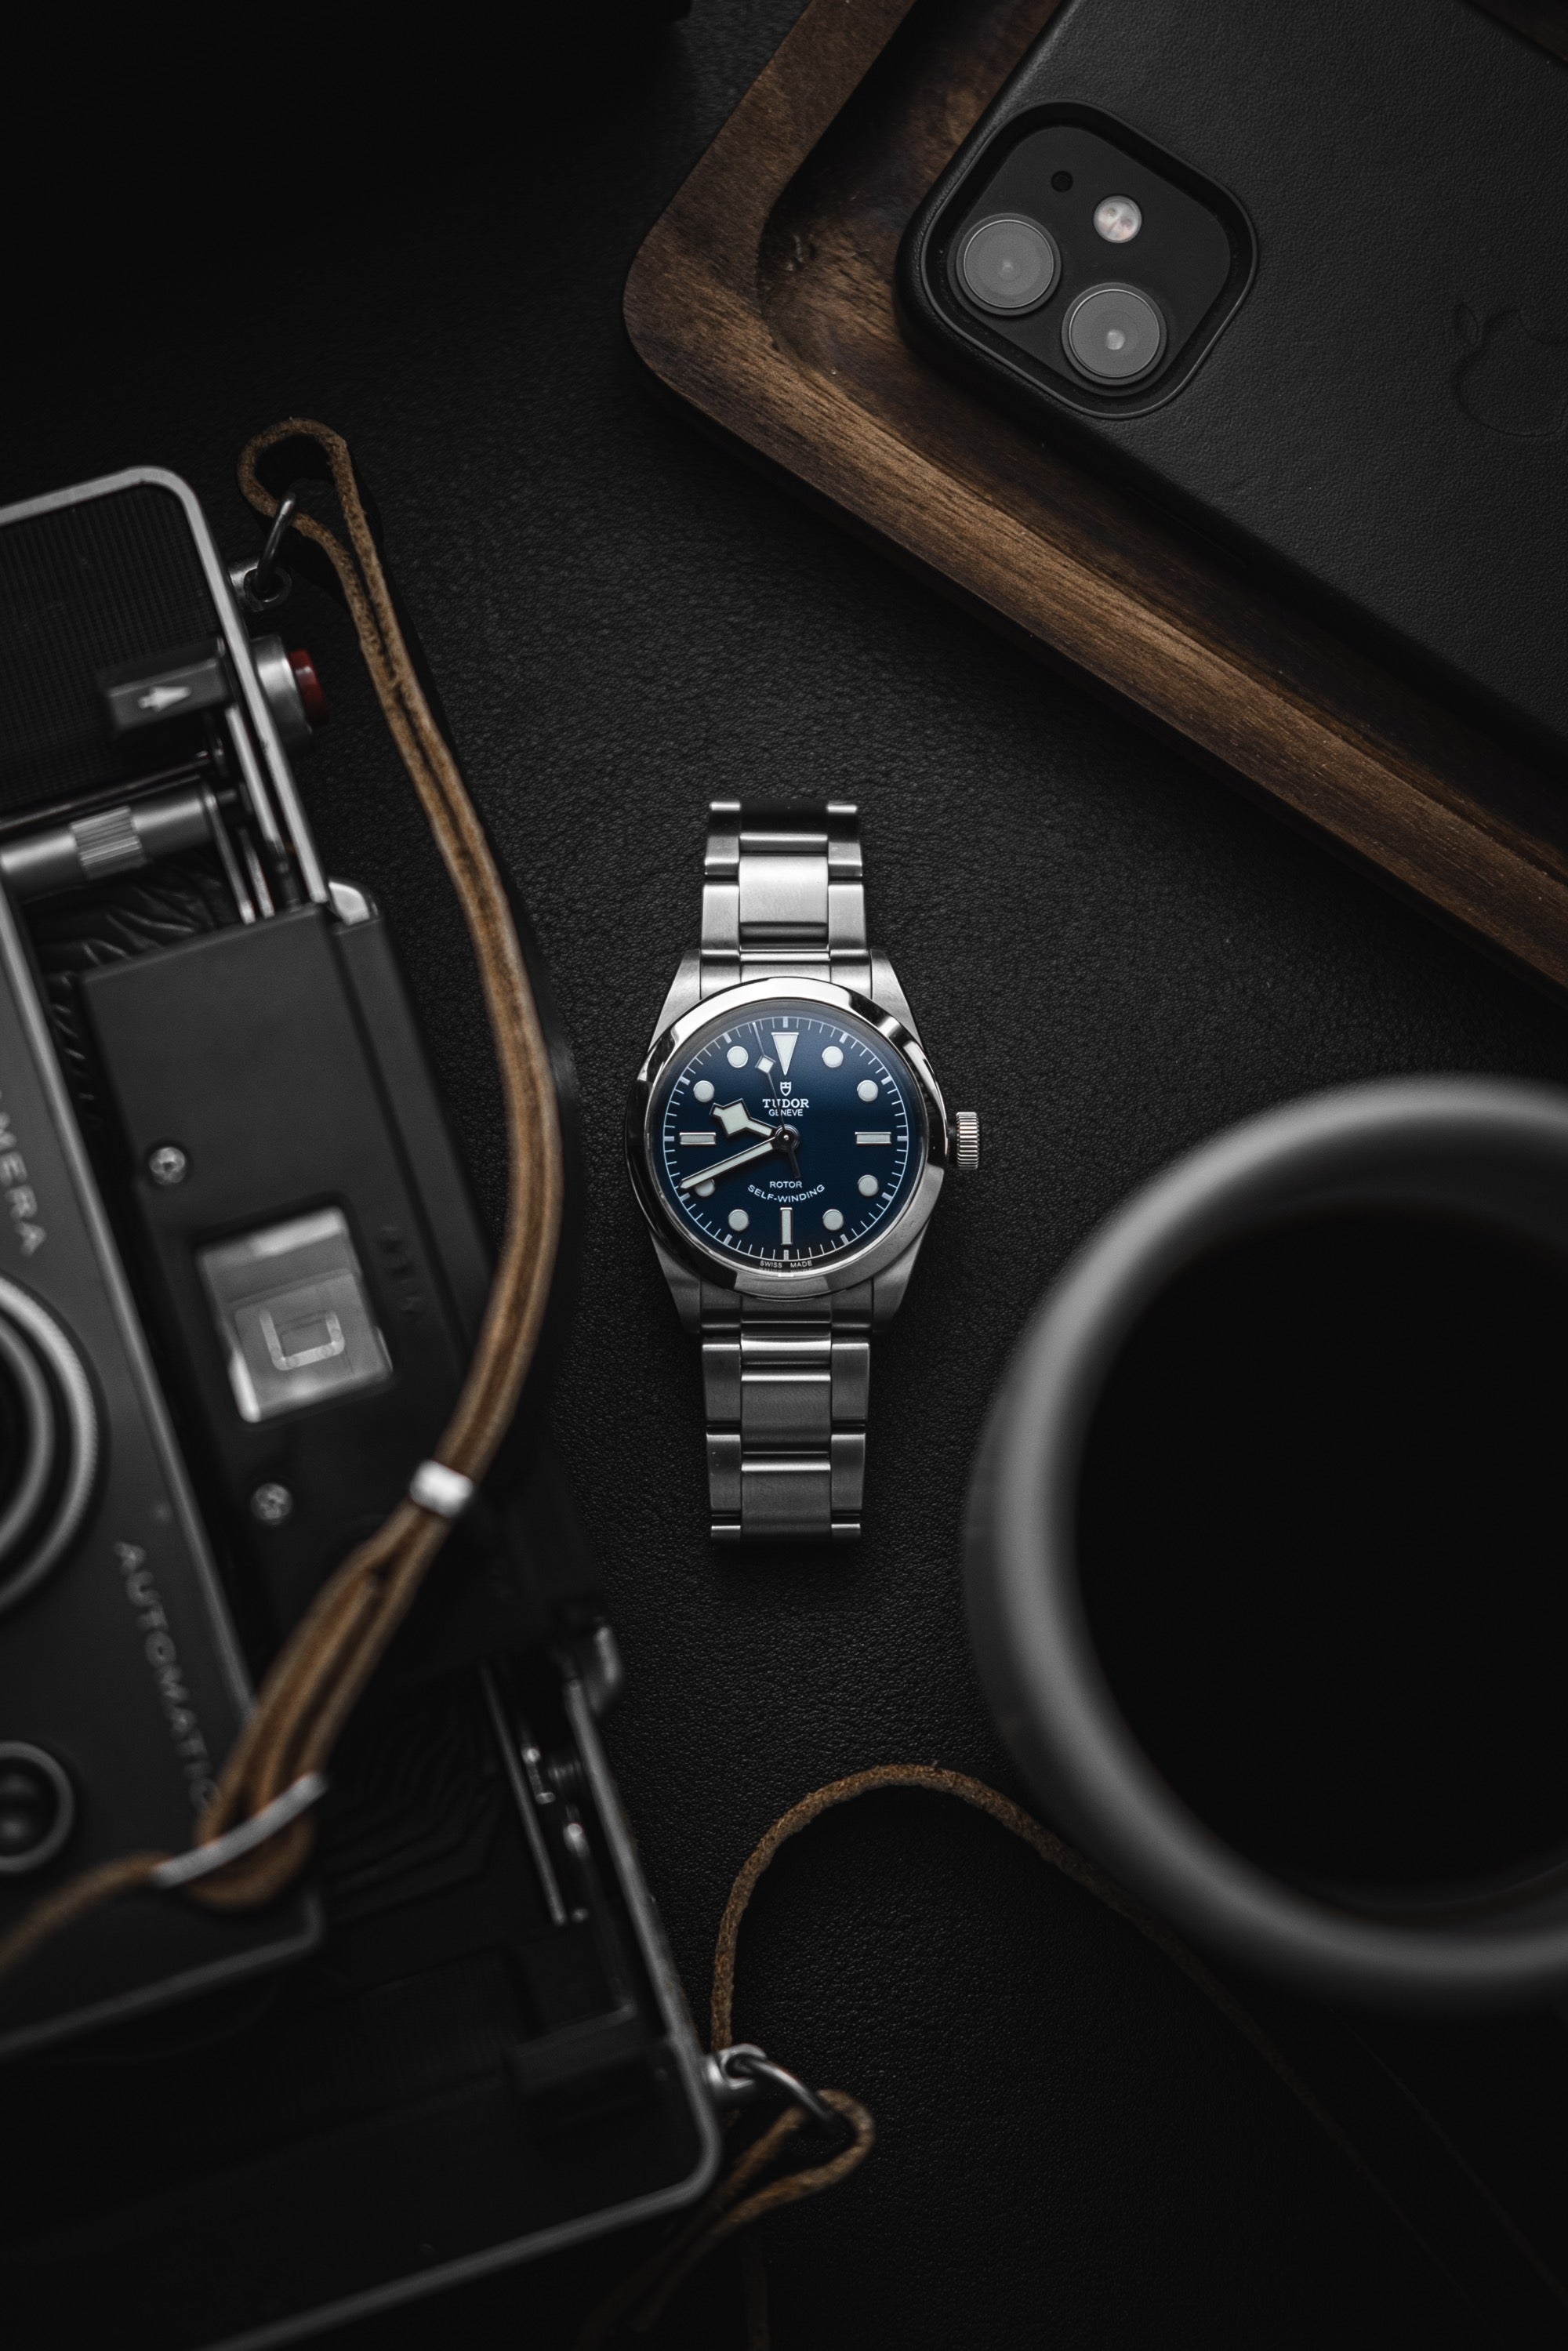 6 tips to improve your watch photography flatlays